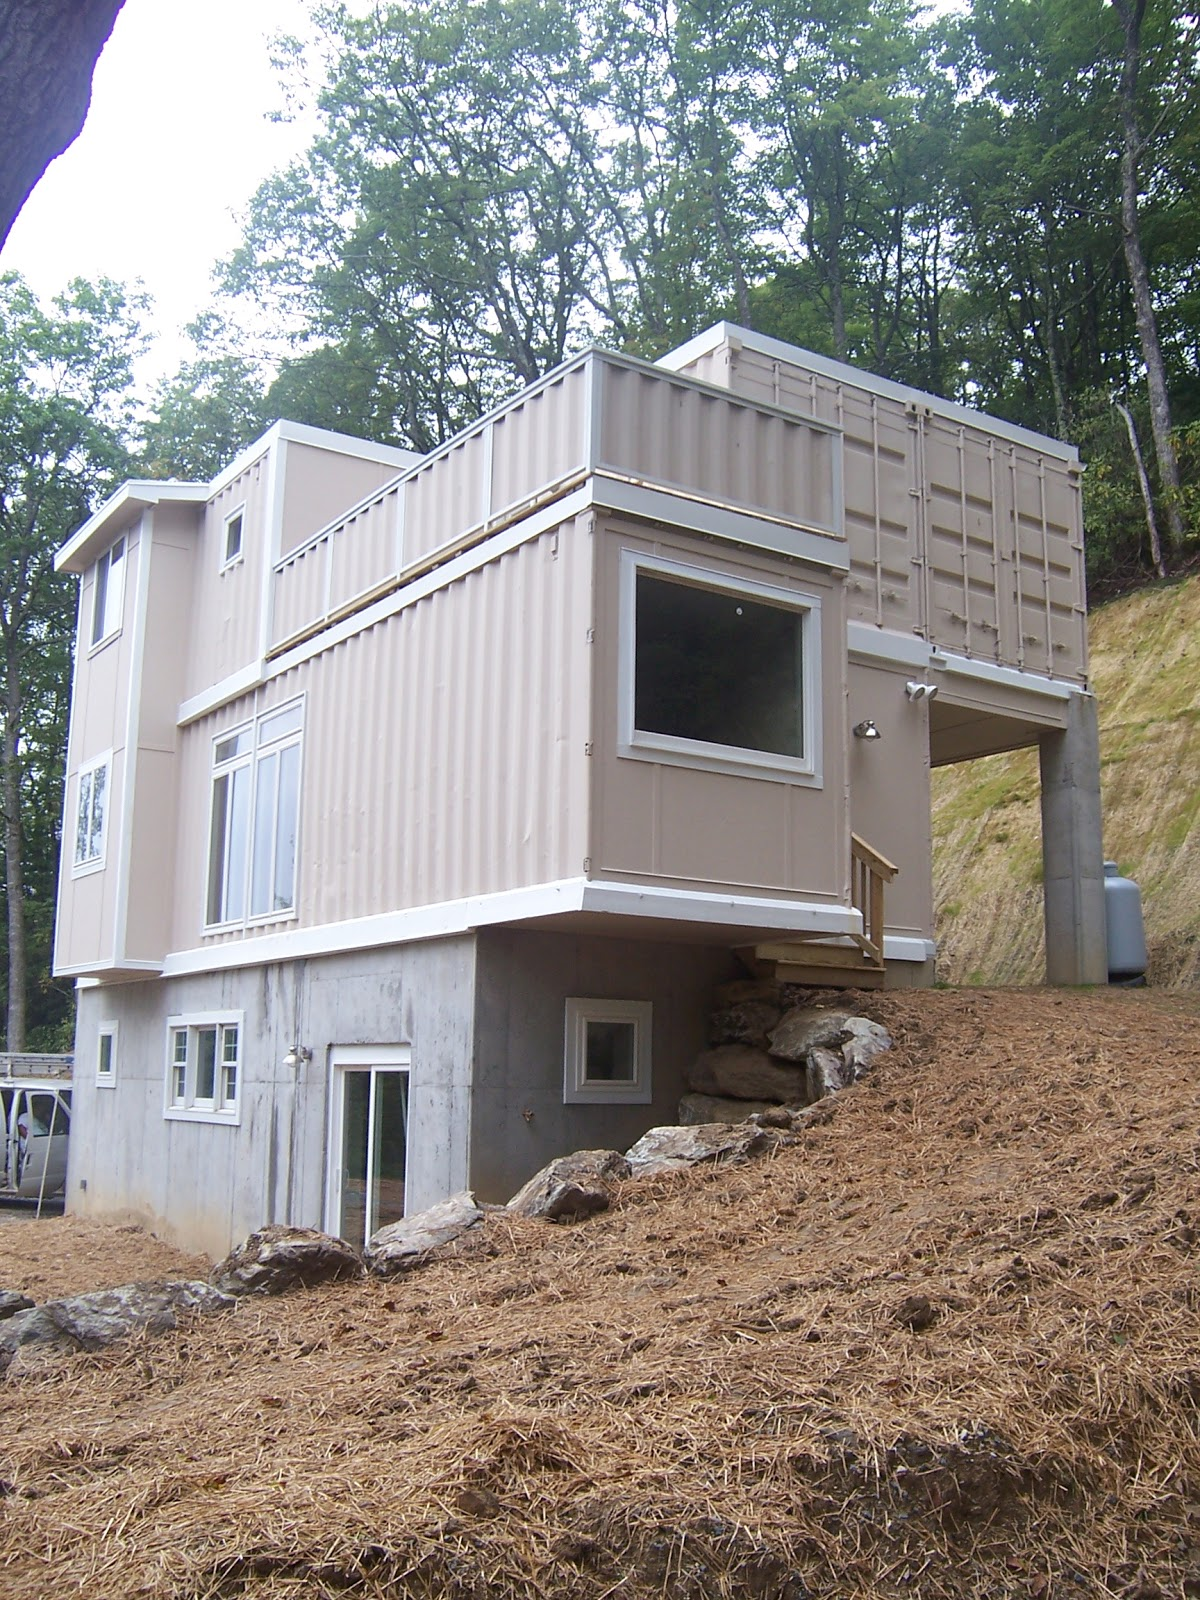 prefab shipping container homes for sale australia small house